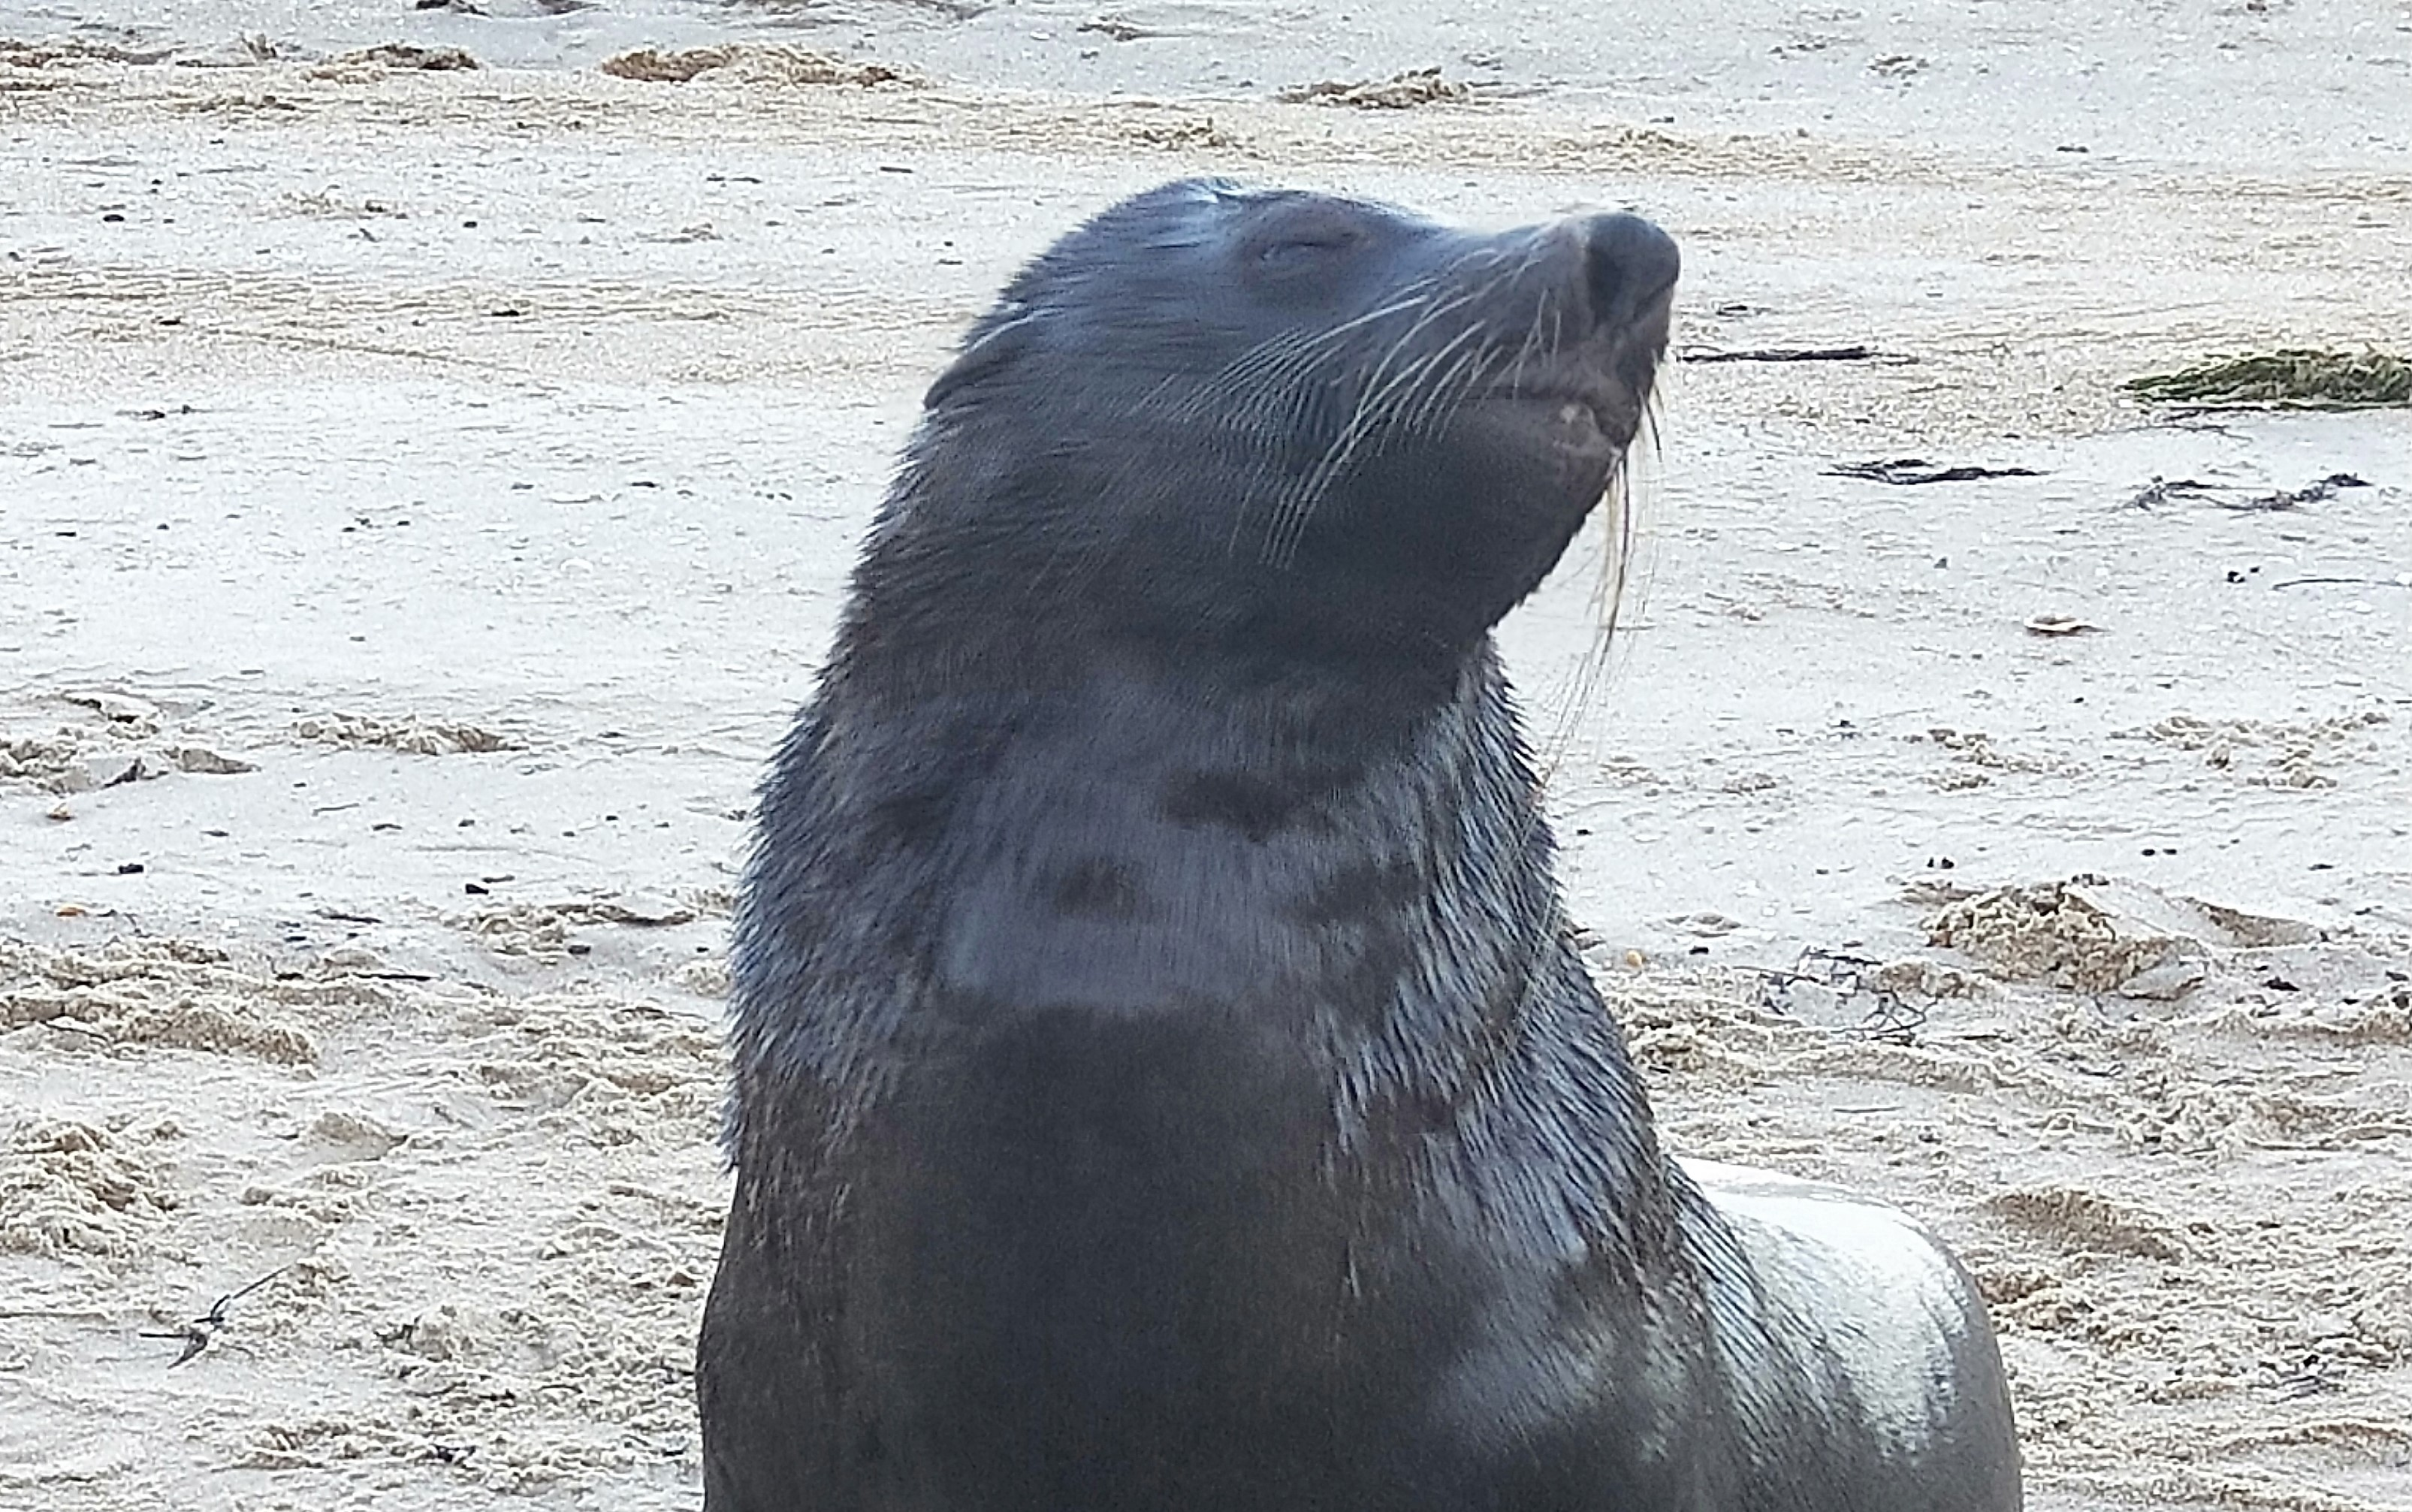 Article image for The huge Black Rock seal has died